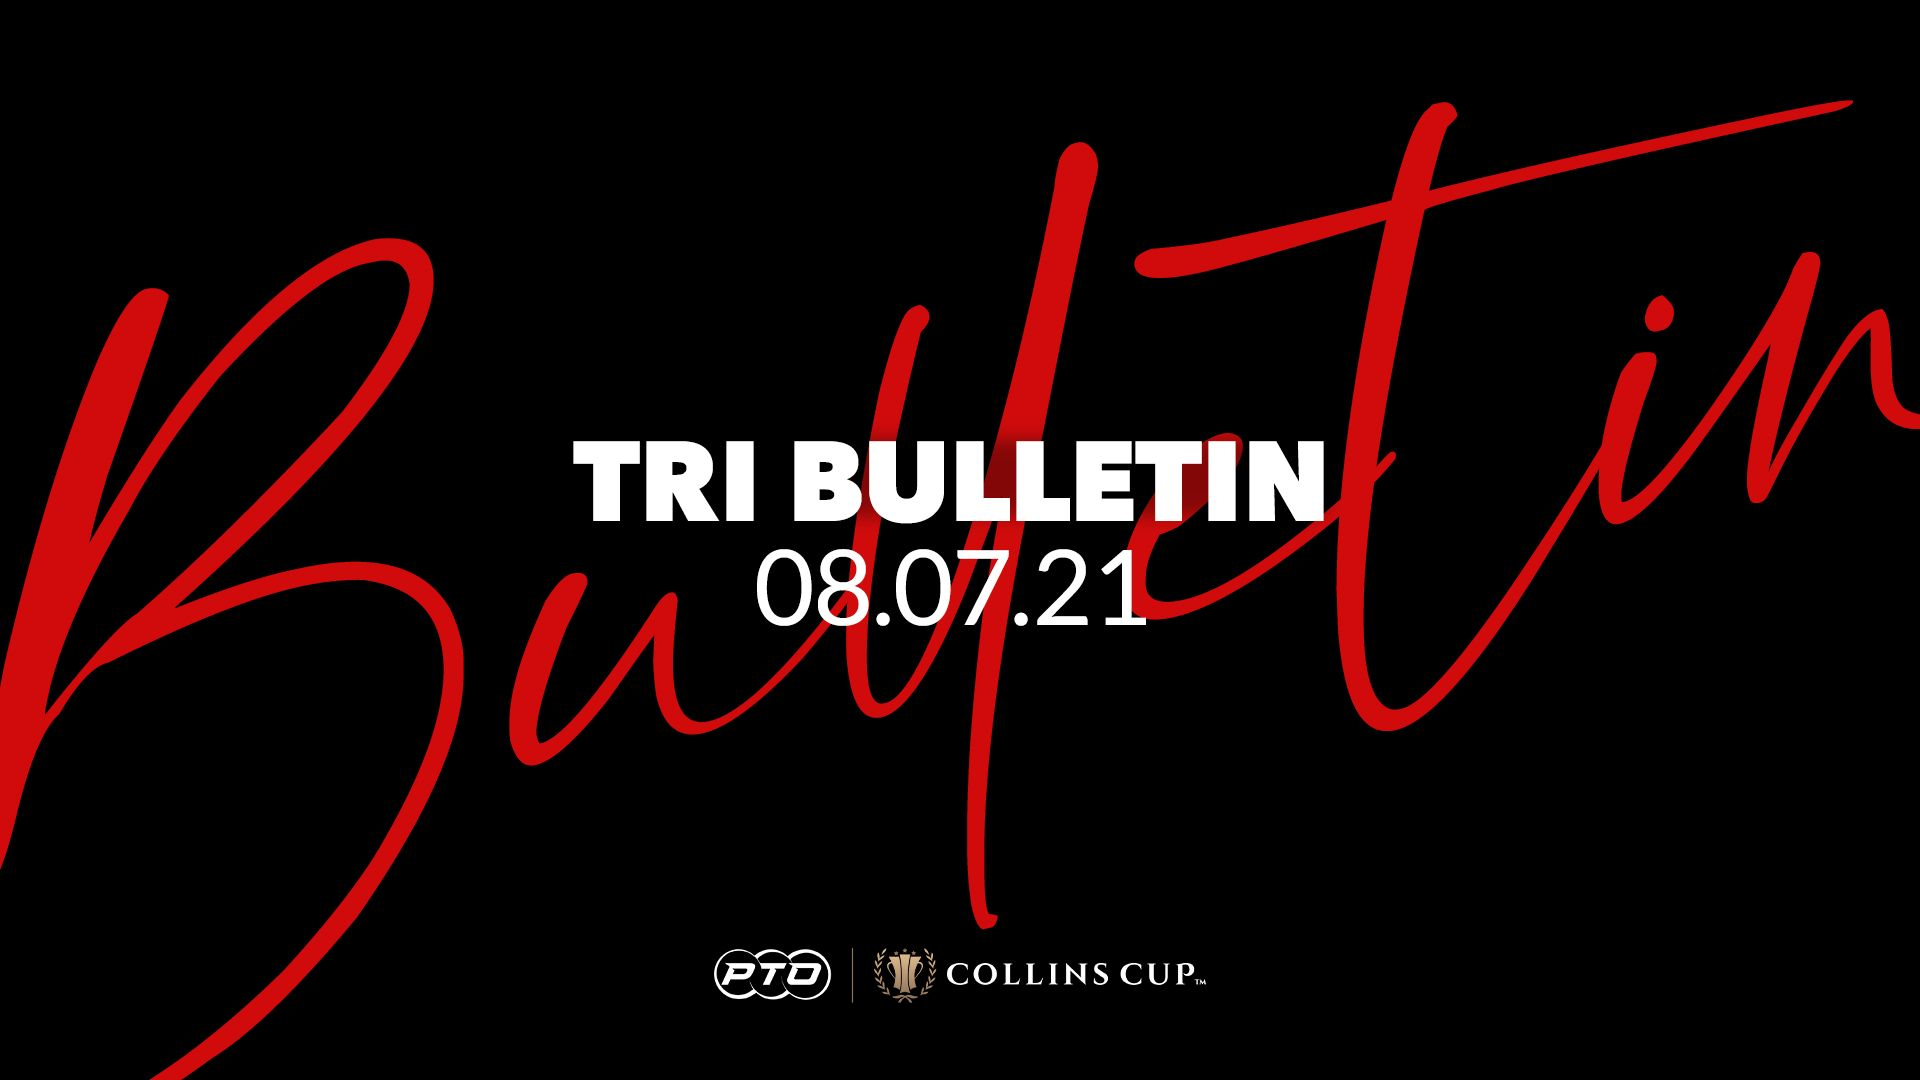 Tri Bulletin: IM UK Rivalries, Weekend Winners, Vesterby Victorious And More